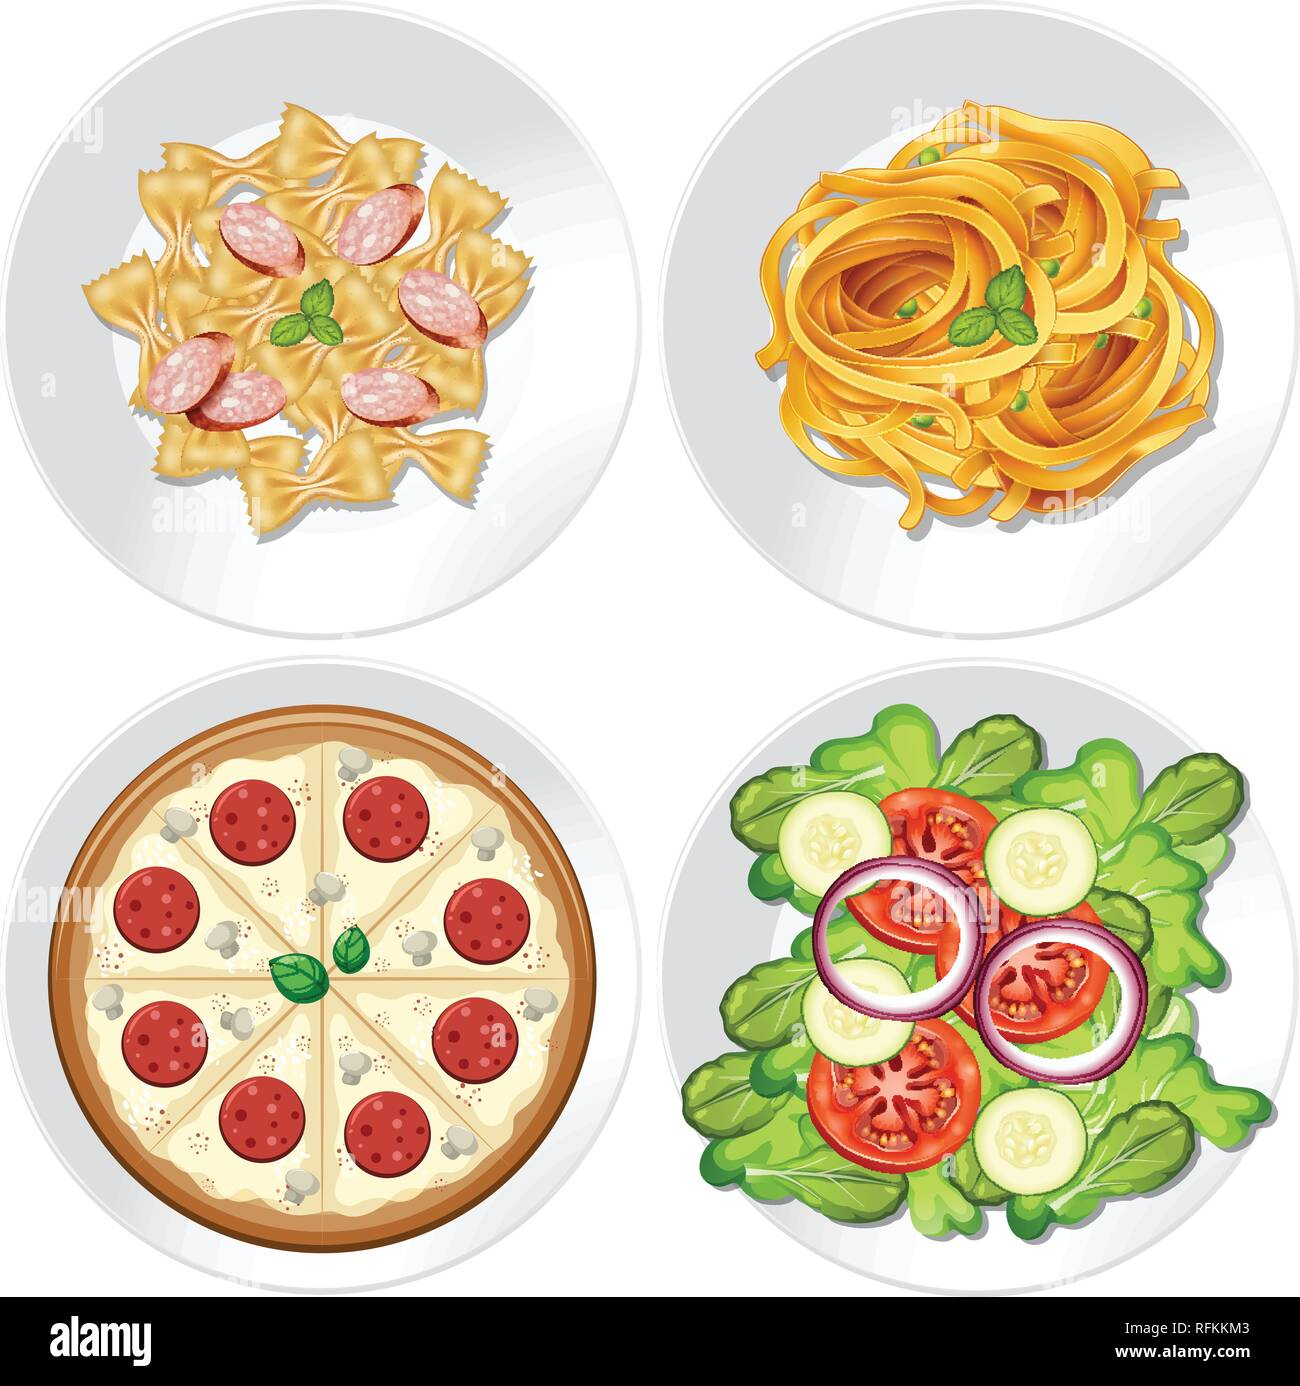 Set of healthy food illustration - Stock Image